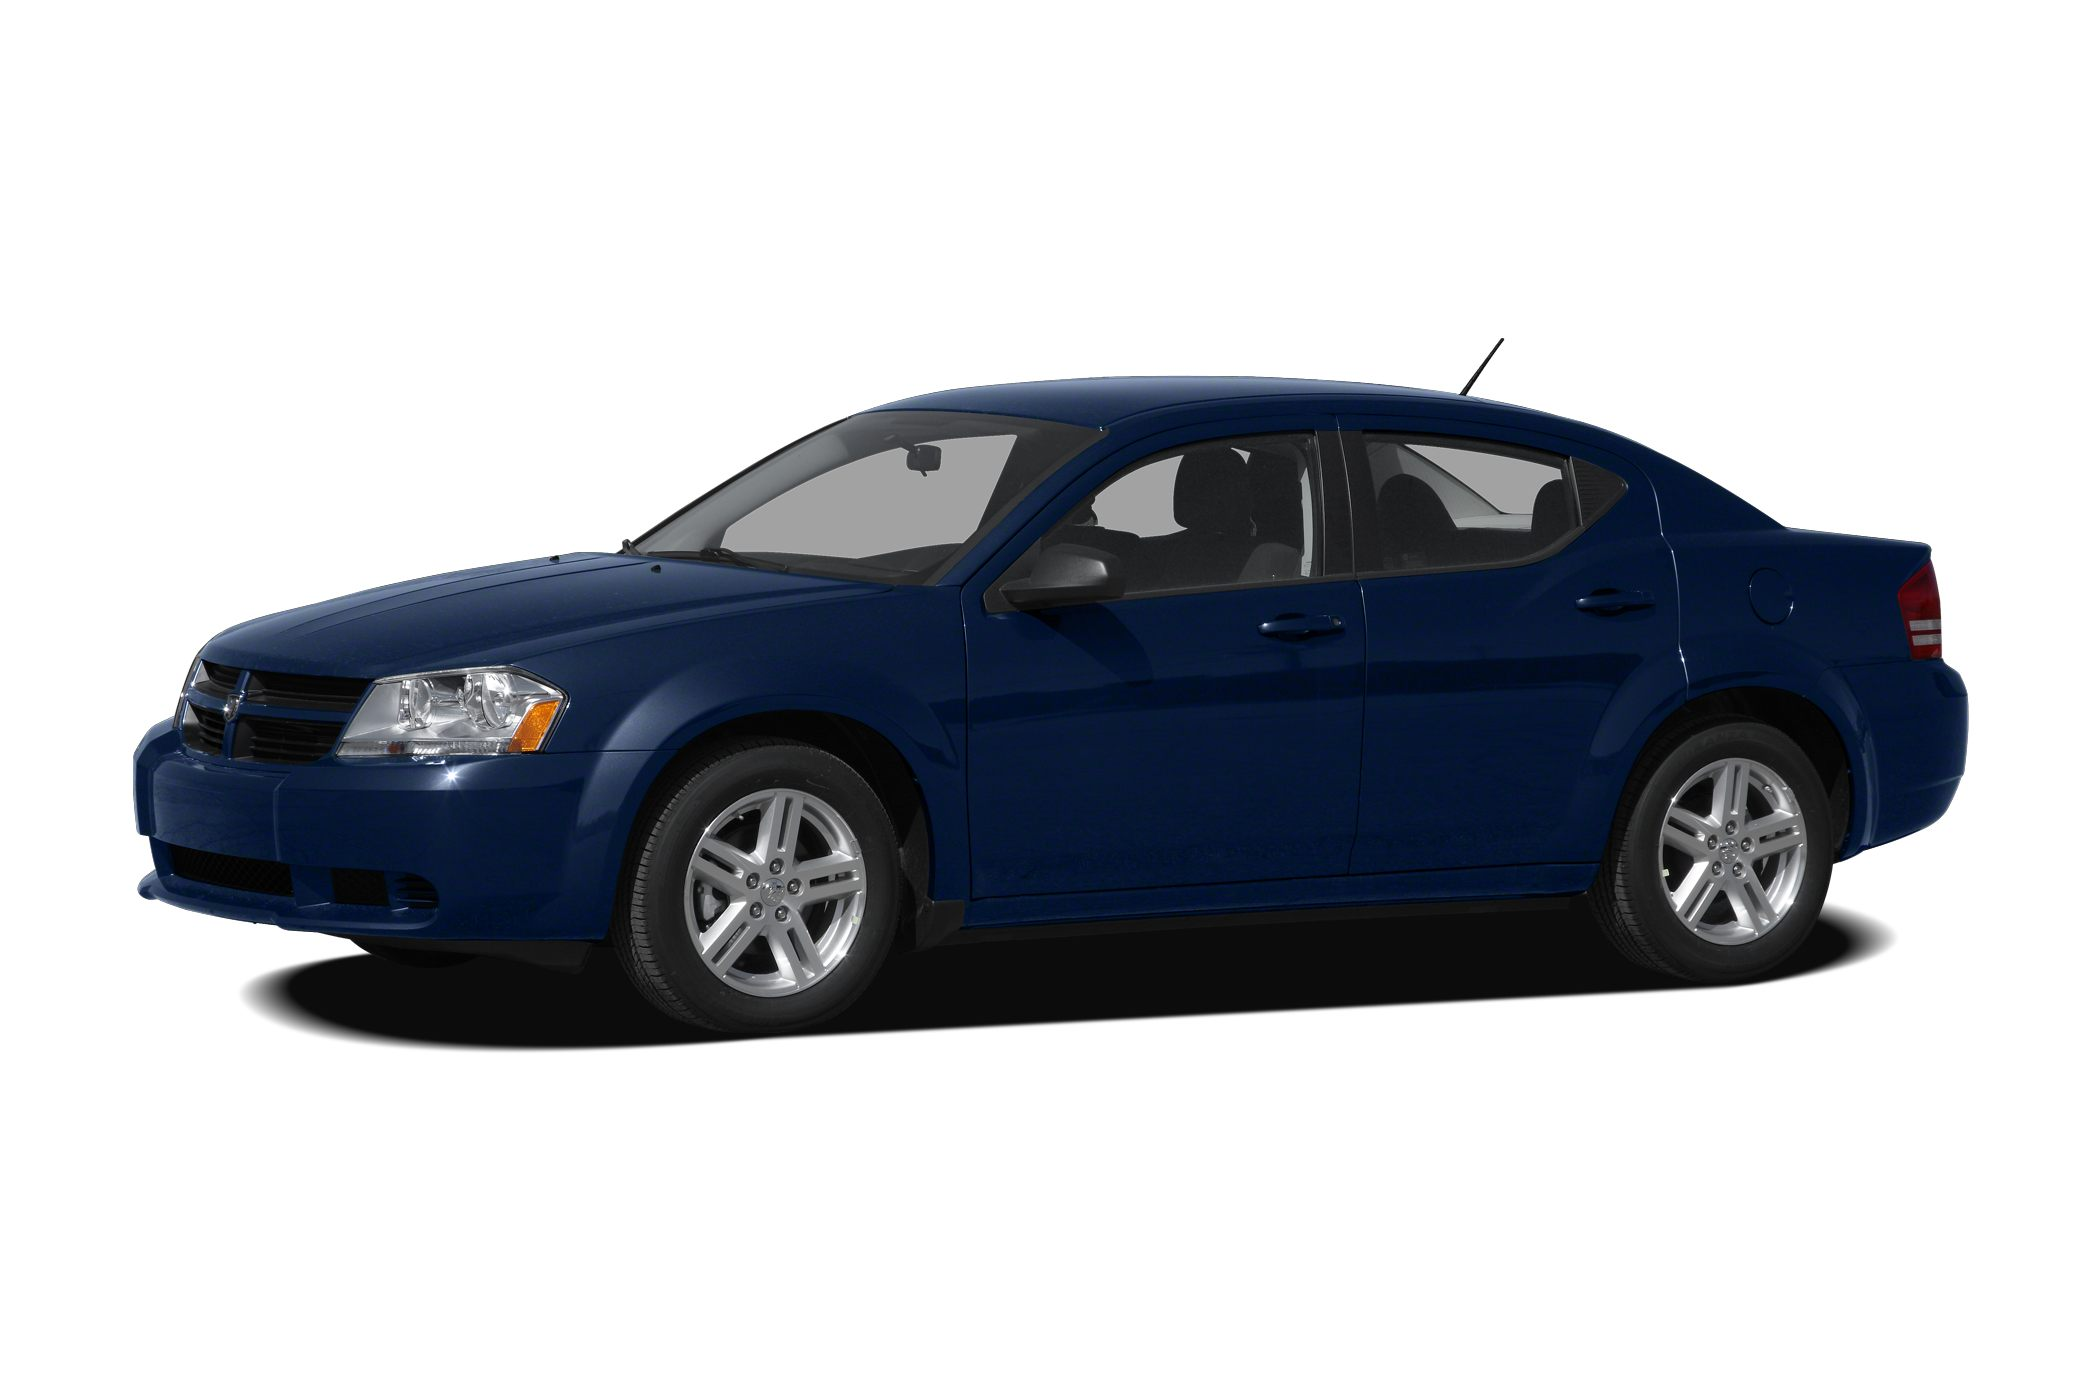 2009 Dodge Avenger R/T Sedan for sale in Independence for $6,907 with 133,084 miles.